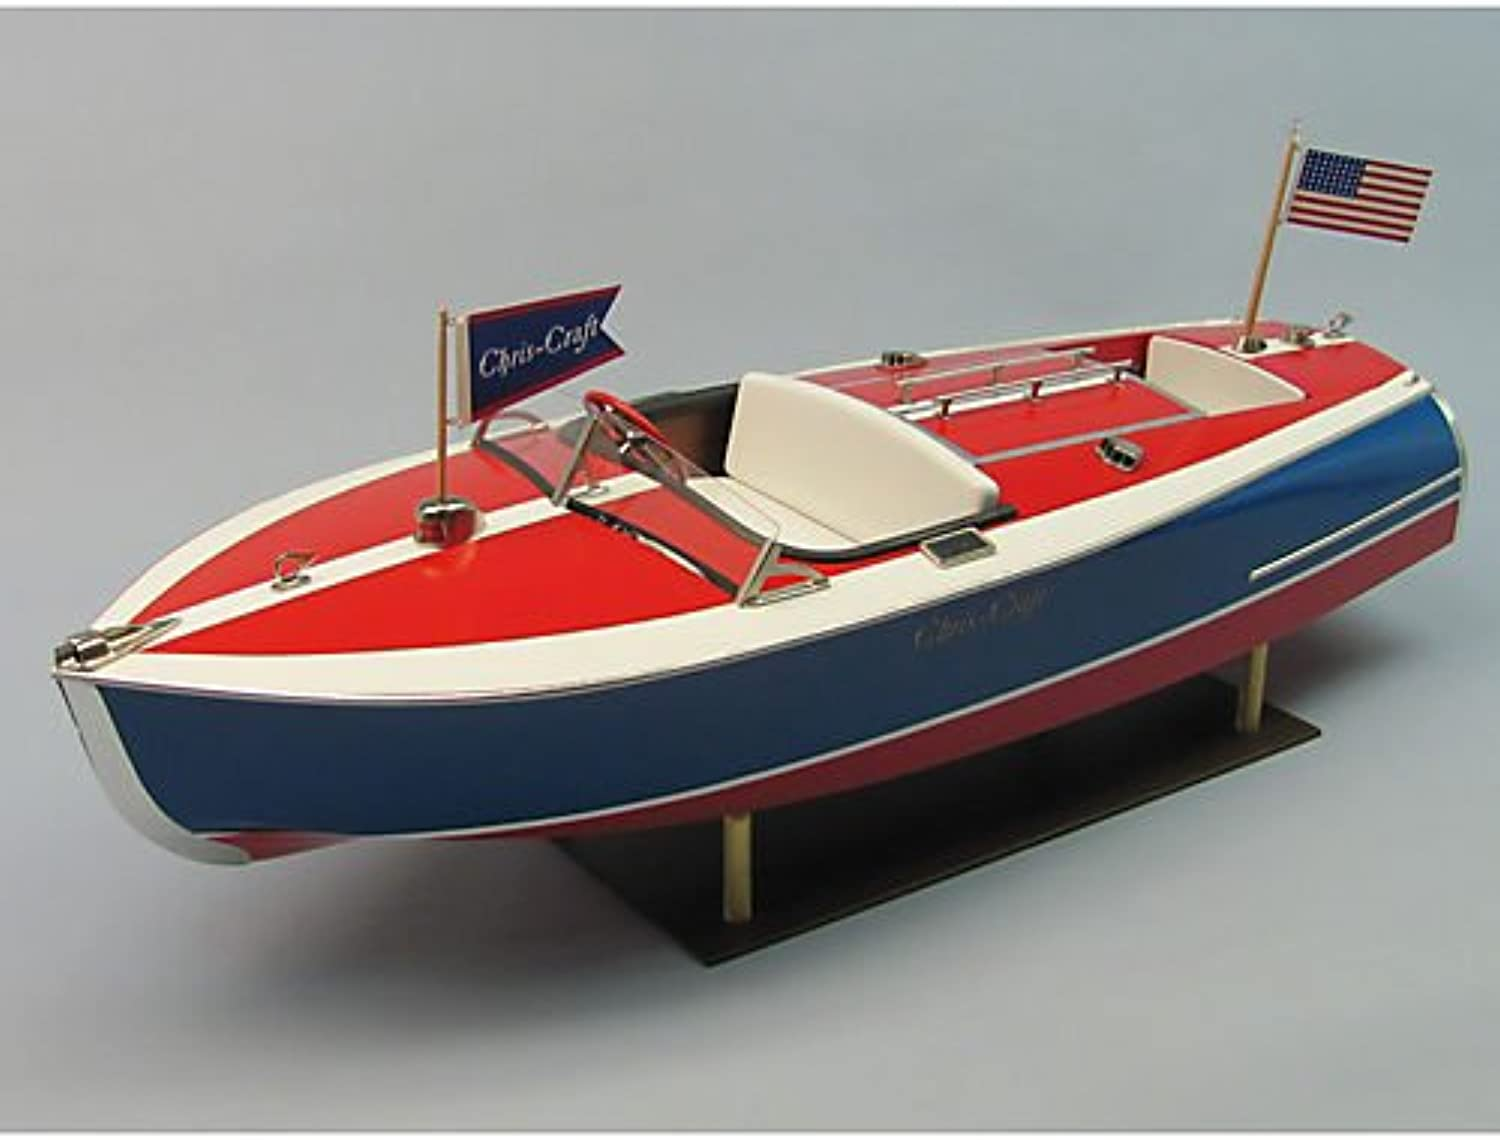 Dumas 1263 Chris-Craft Painted Racer L 610mm W 216mm Scale 1 8